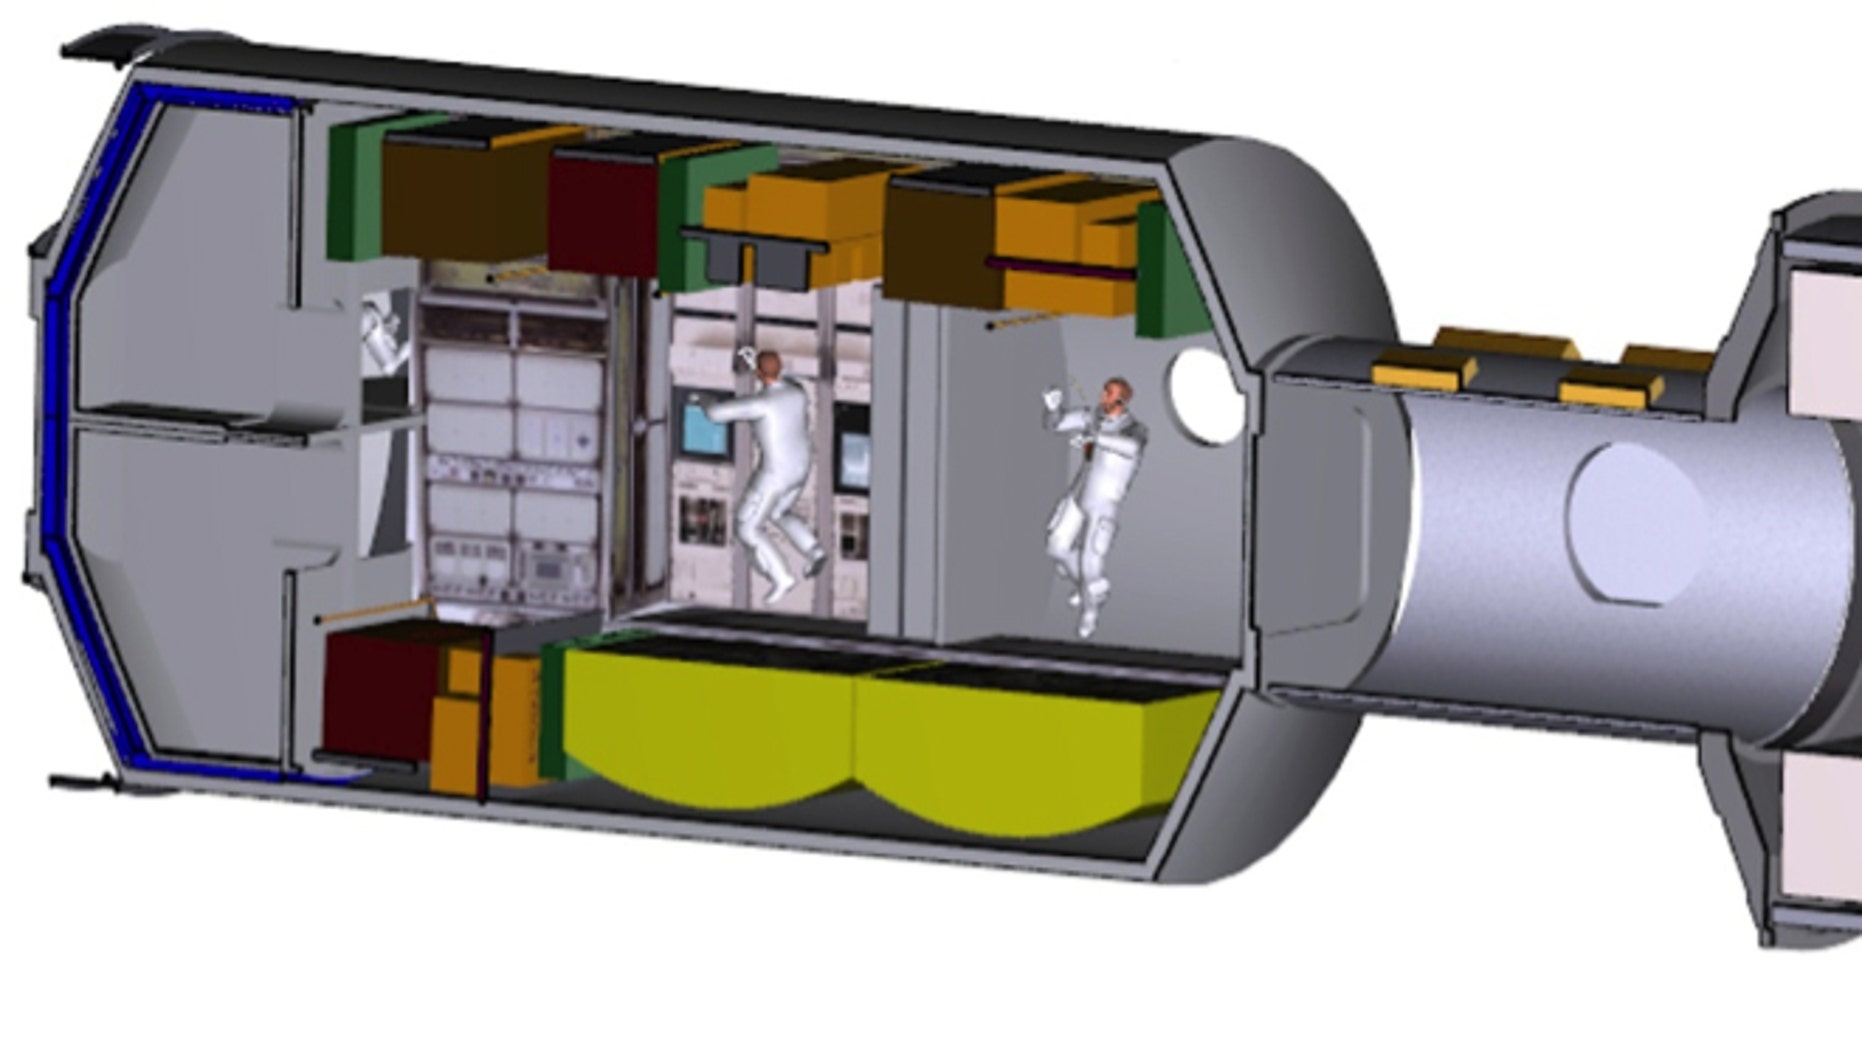 The ISS-derived Deep Space Habitat concept demonstrator evaluation will focus on the following elements, from left to right, Lab/Hab, tunnel, and Multi-Purpose Logistics Module. (NASA)